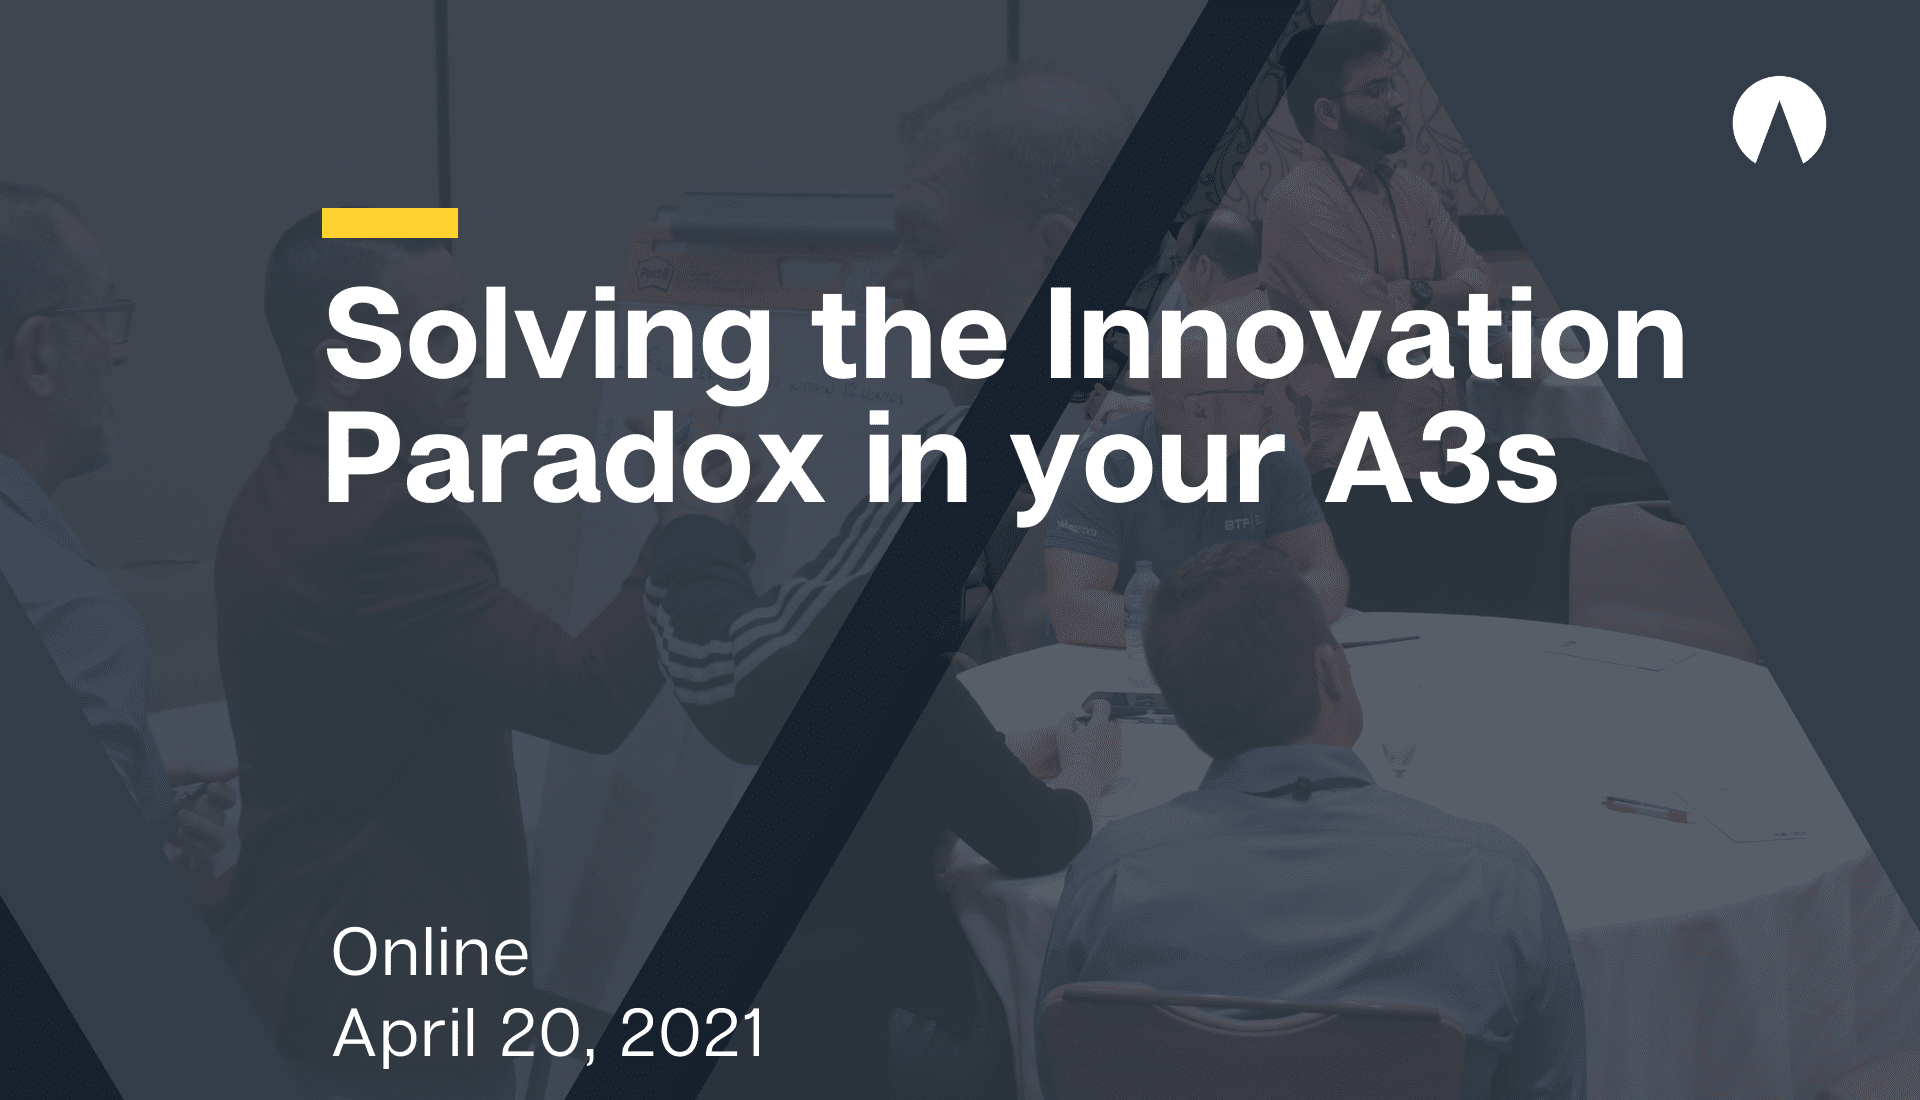 Solving the Innovation Paradox in your A3s